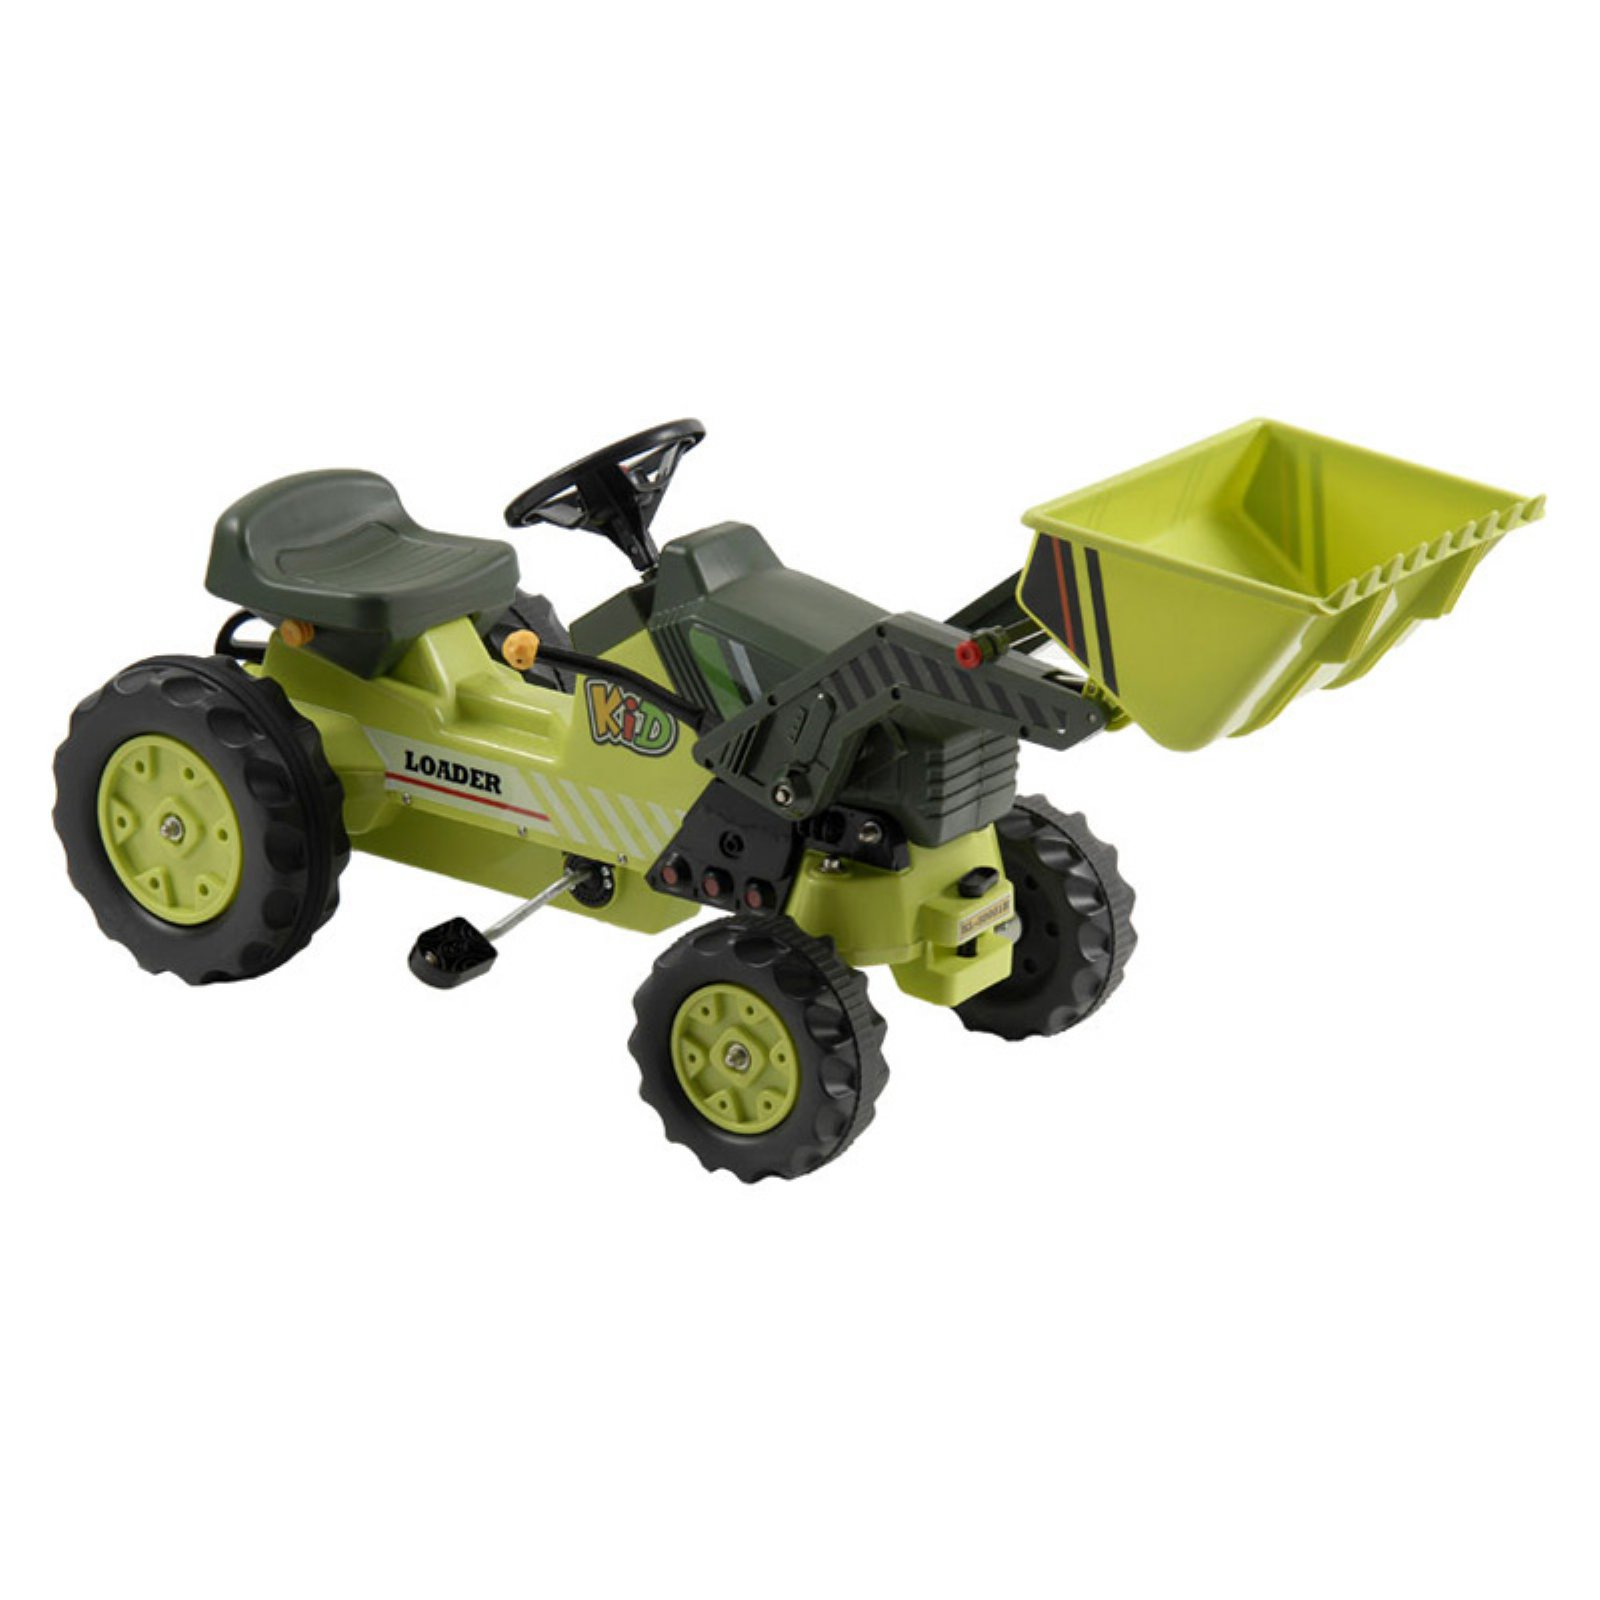 Kalee Tractor & Loader Pedal Riding Toy